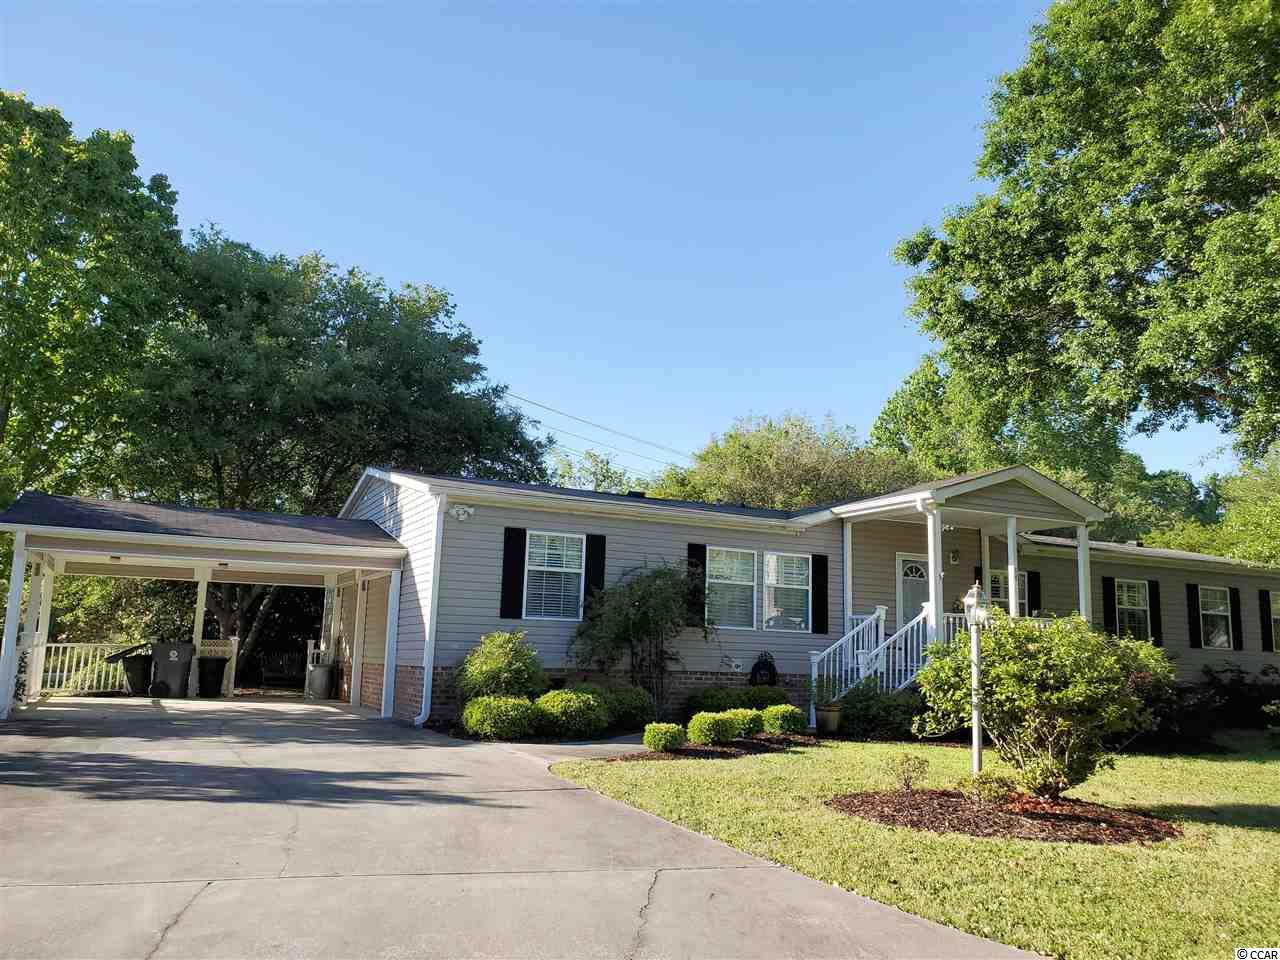 Lots of extras in this Home. Completely rewired throughout, 4th bedroom was made into storage room.Gas fireplace.Detached shed with electricity and AC.Private backyard.12x24 deck, 11x7 Foyer, 9x9 laundry room.Lot rent includes garbage & trash pick-up.Close to Waccamaw Hospital, Intracoastal Waterway, Murrells Inlet Marshwalk, Brookgreen Gardens, Shopping, Restaurants and the Ocean.